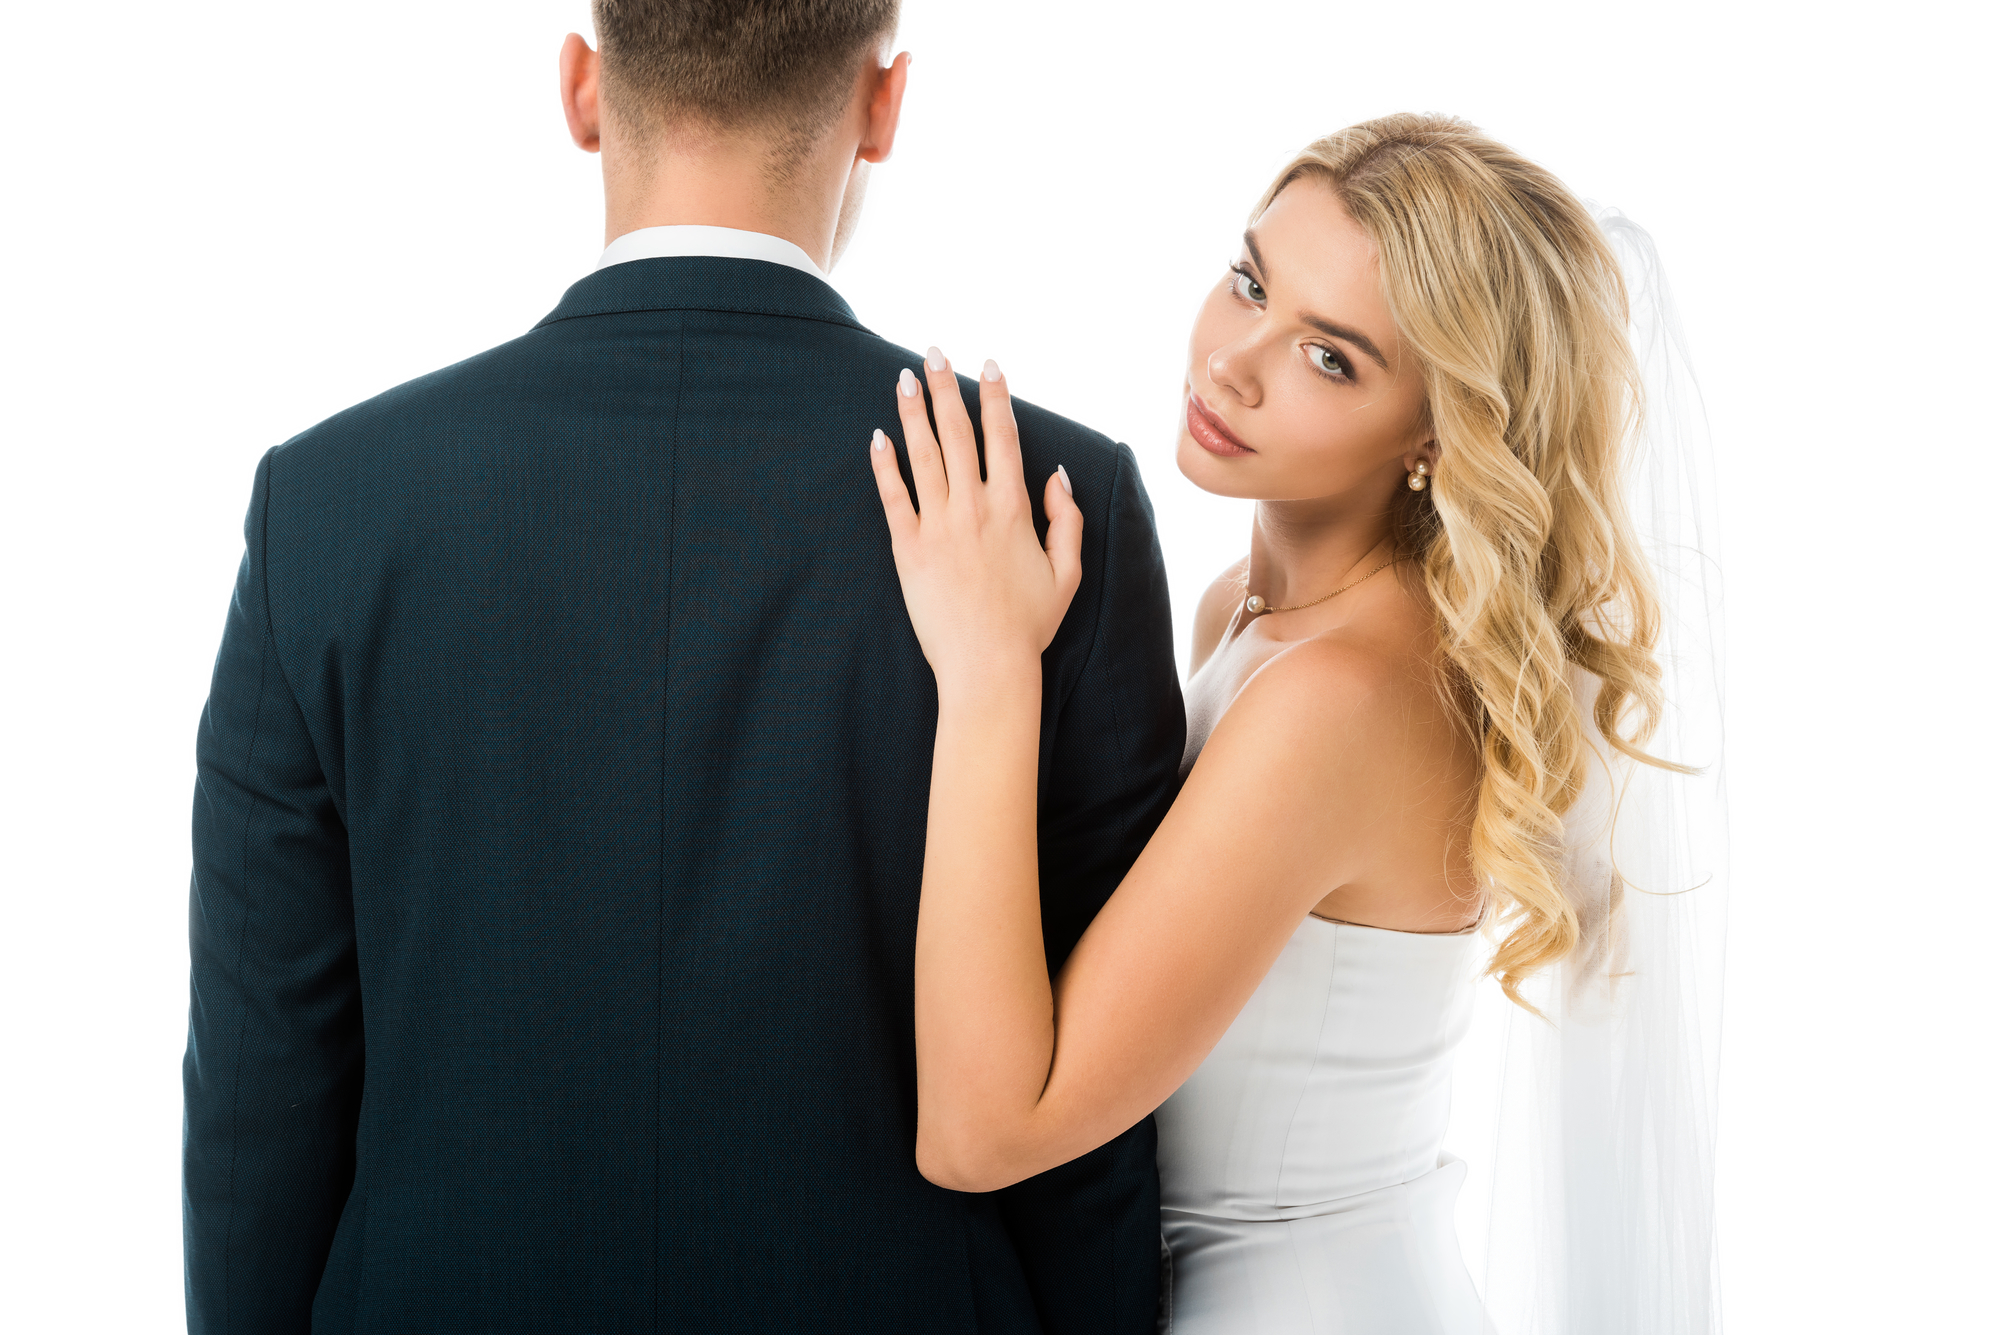 Is it ok to withhold sex from your husband - The Bible does not warrant withholding sex from your husband. In fact, the Bible speaks against it. Withholding sex can cause friction, hurt feelings, and a hardened heart.